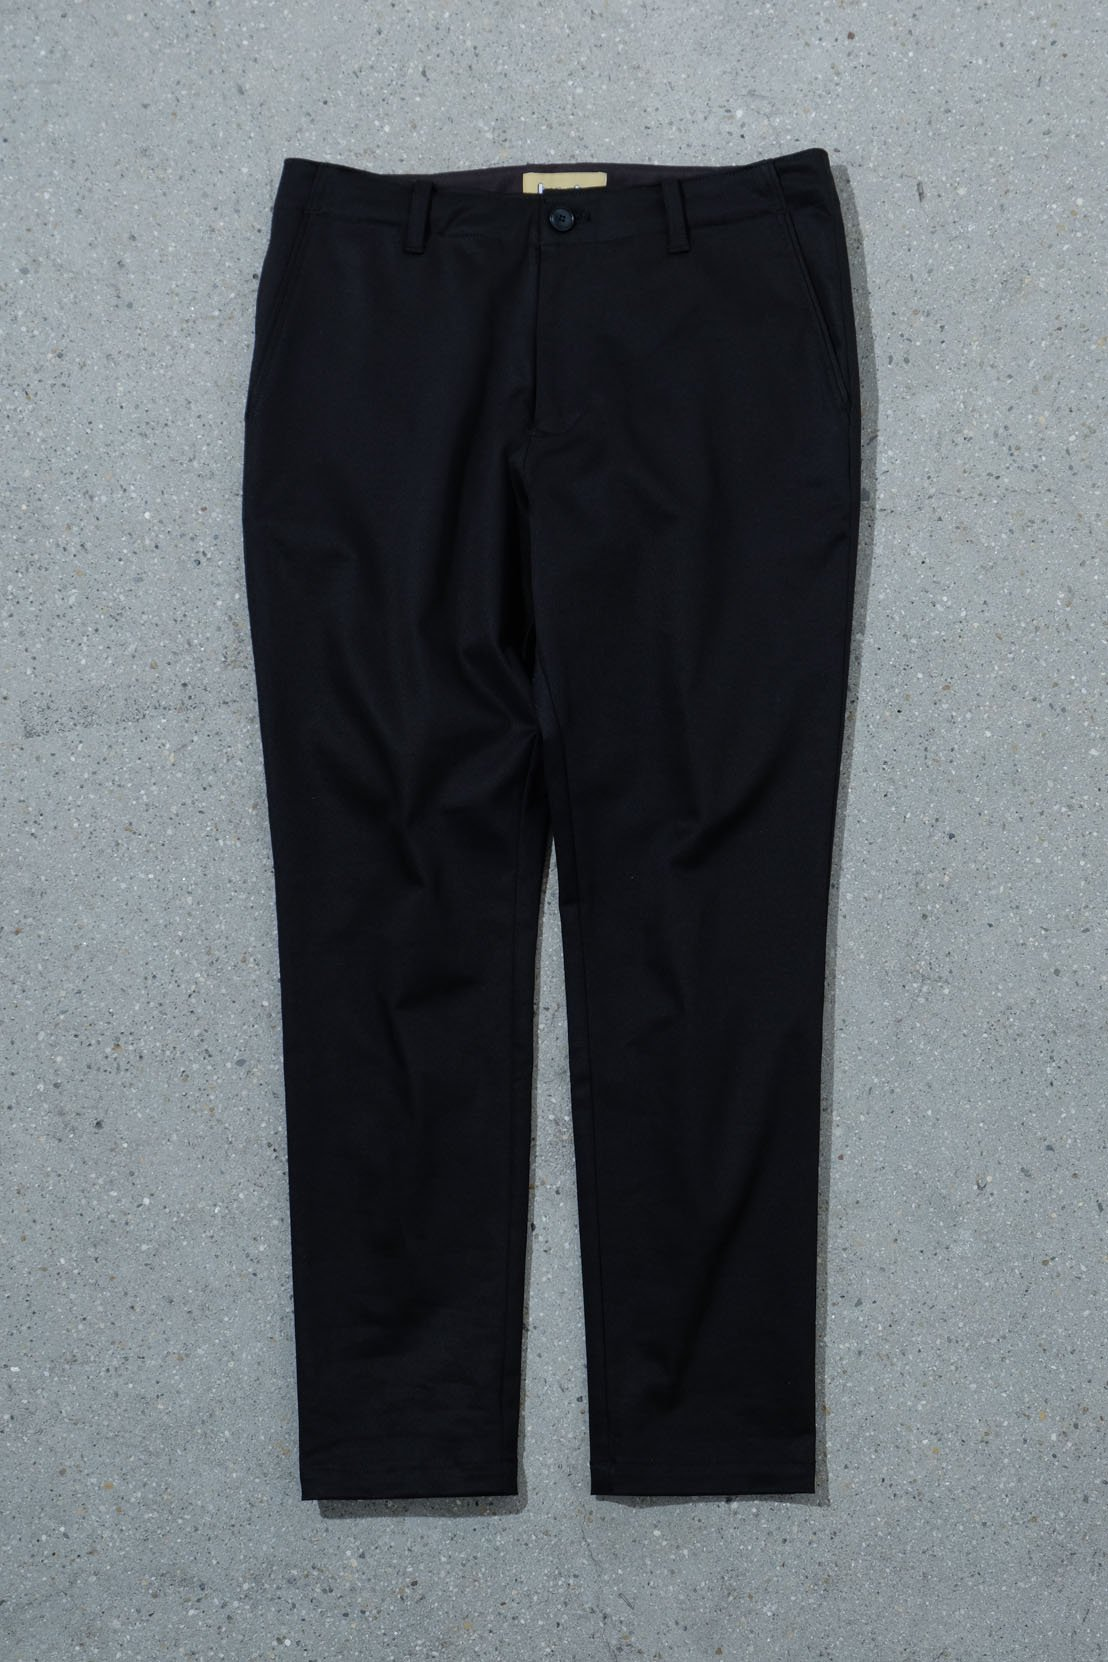 ORIGINAL MADE by IMA:ZINE / STRETCH TAPERED MASTER PANTS